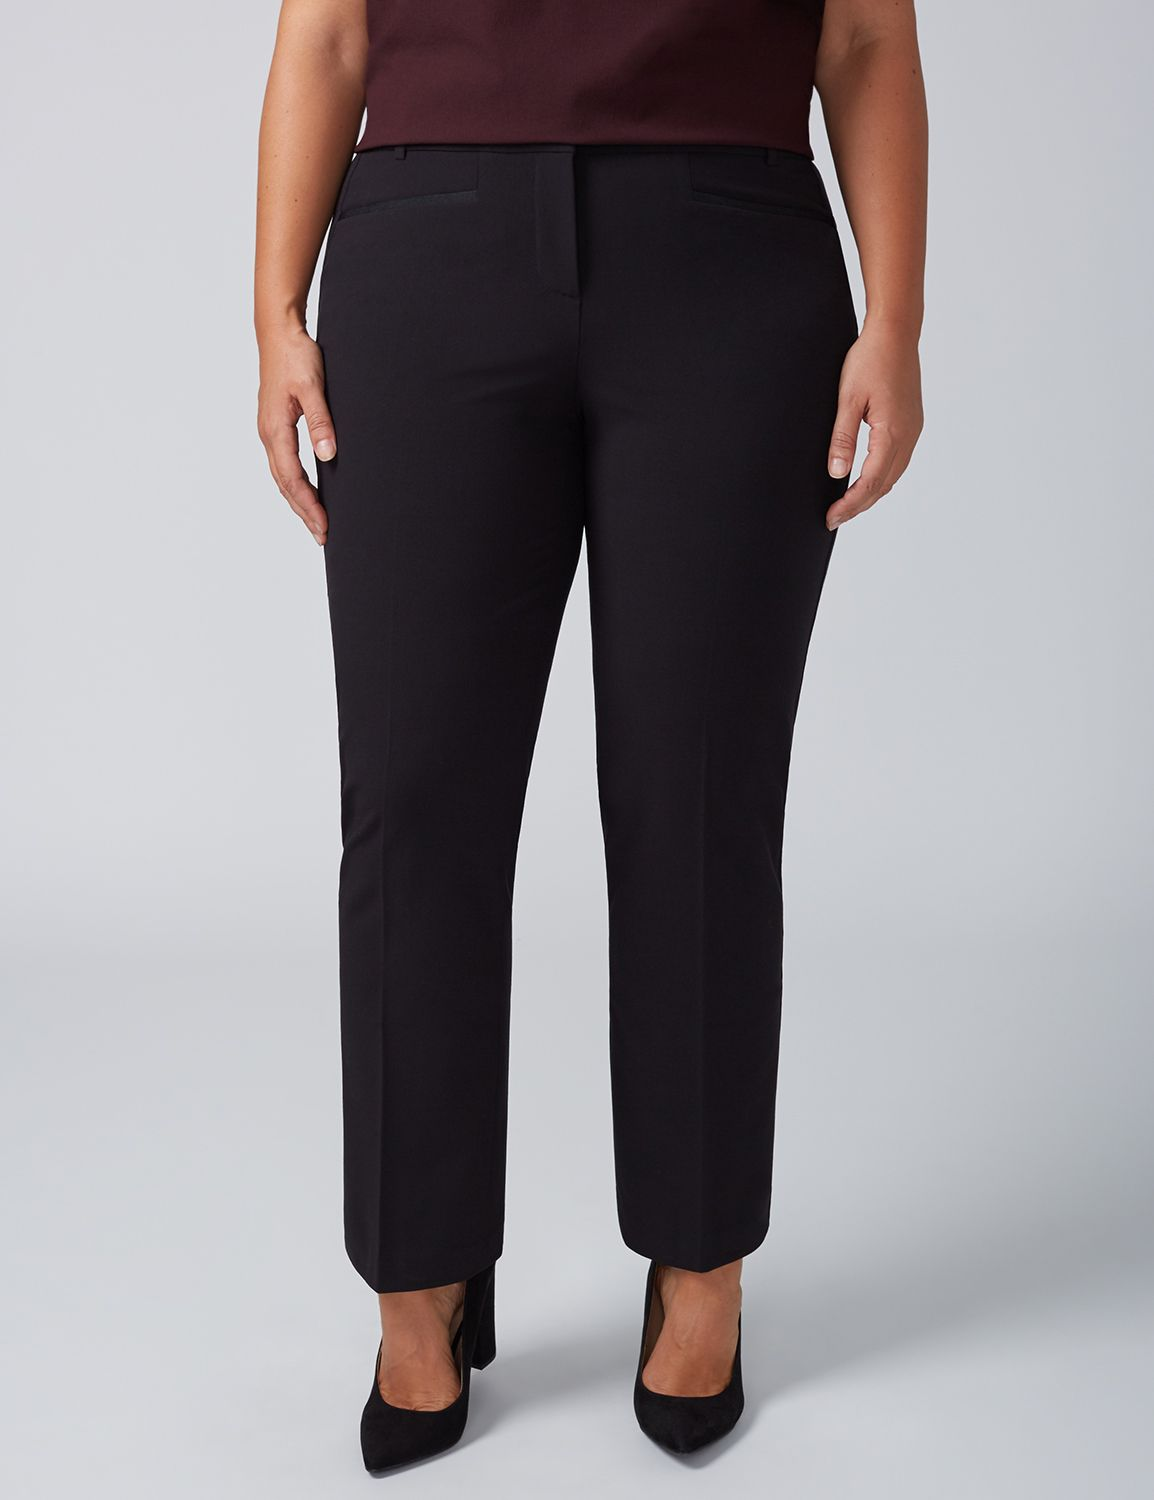 Lane Bryant Womens Lena Tailored Stretch Straight Leg Pant With T3 Technology 24P Black